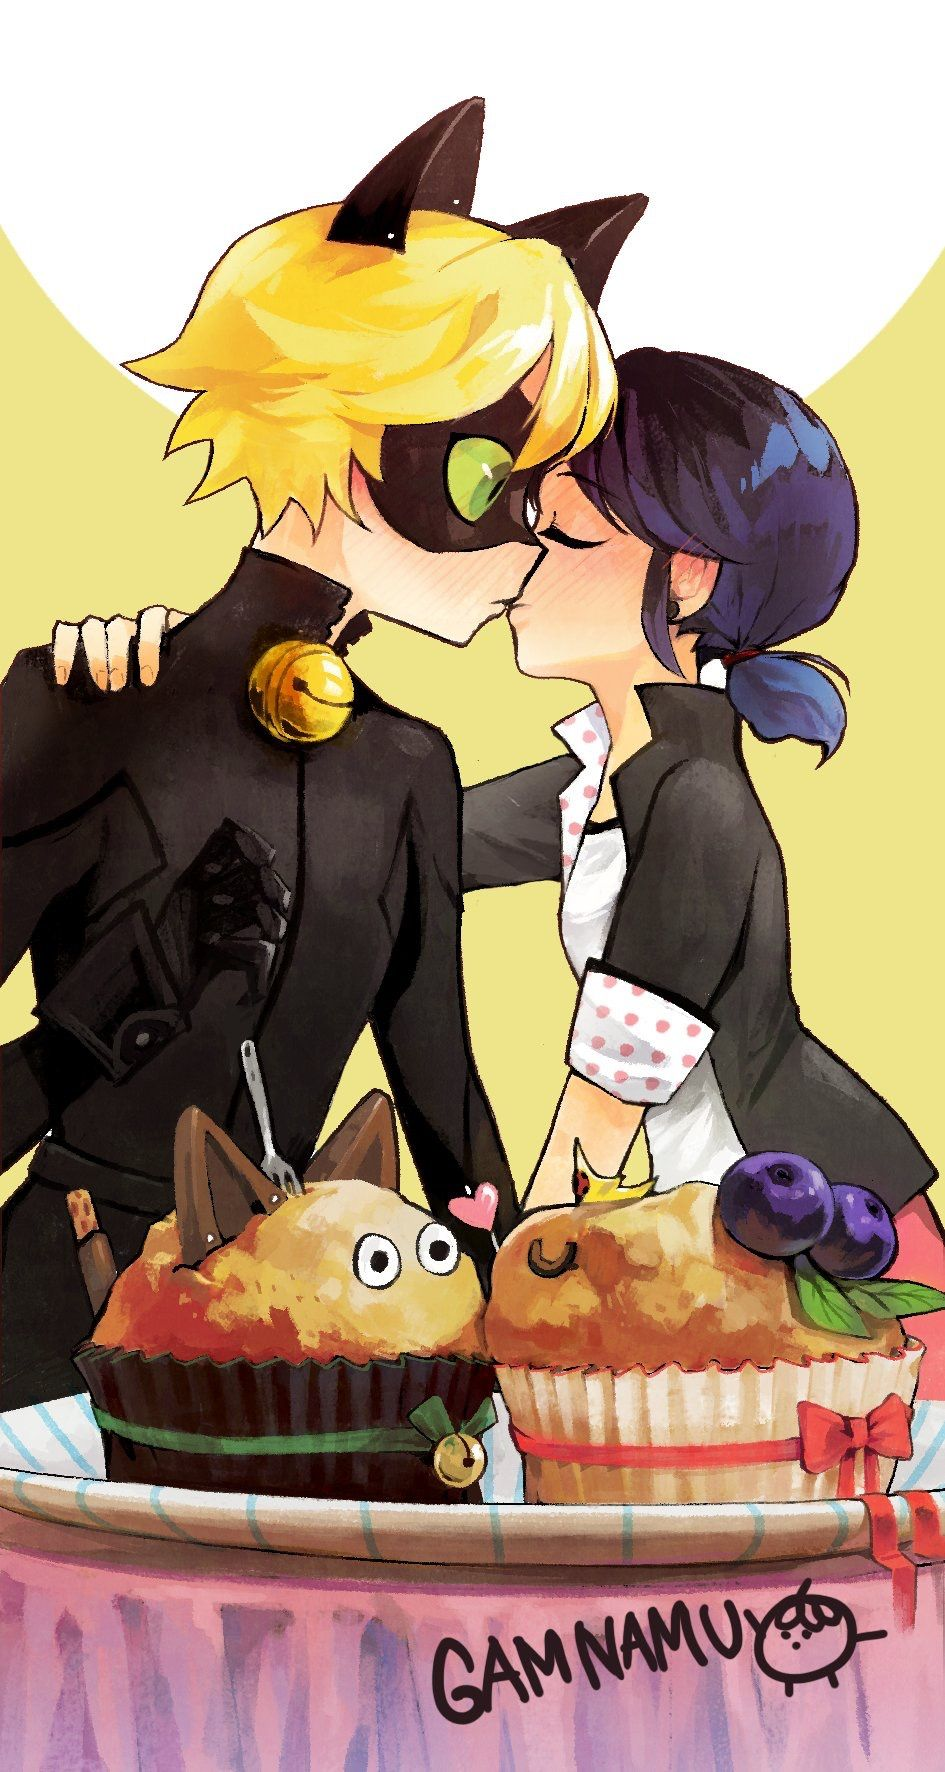 marichat is my favorite part of the love square